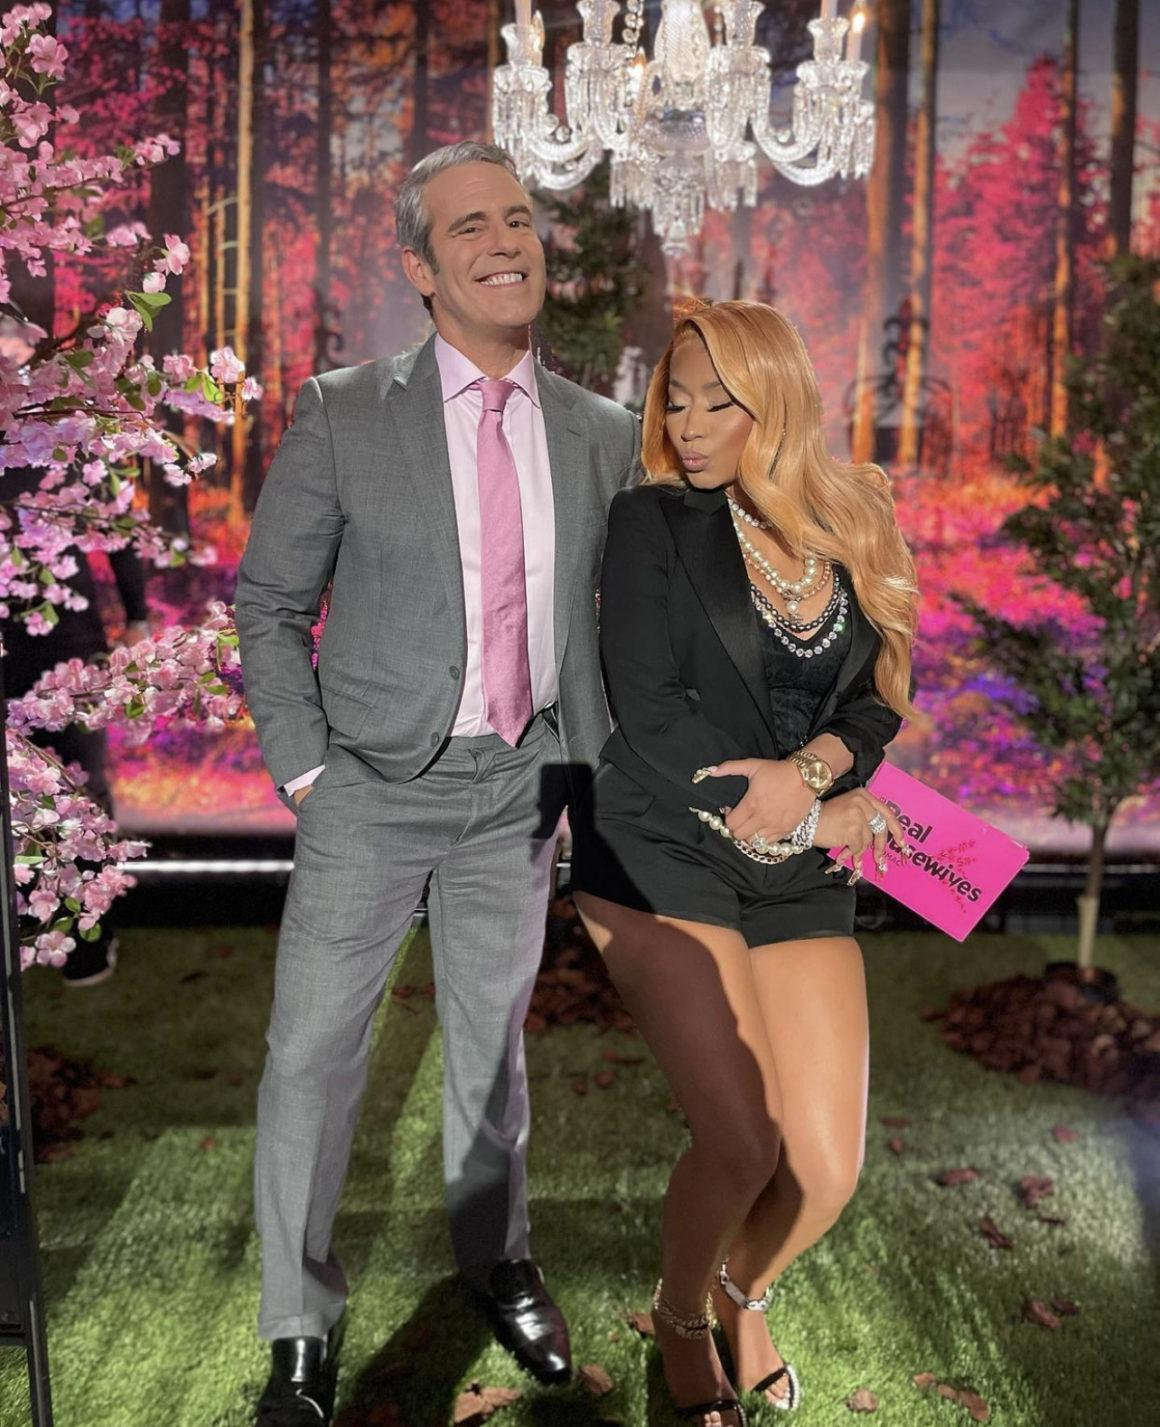 Nicki Minaj Will Guest Host the 'Real Housewives of Potomac' Reunion With Andy Cohen: Confirms News While on Set Wearing Saint Laurent Cropped Blazer and Shorts Paired With Dolce and Gabbana Pearl Accessories